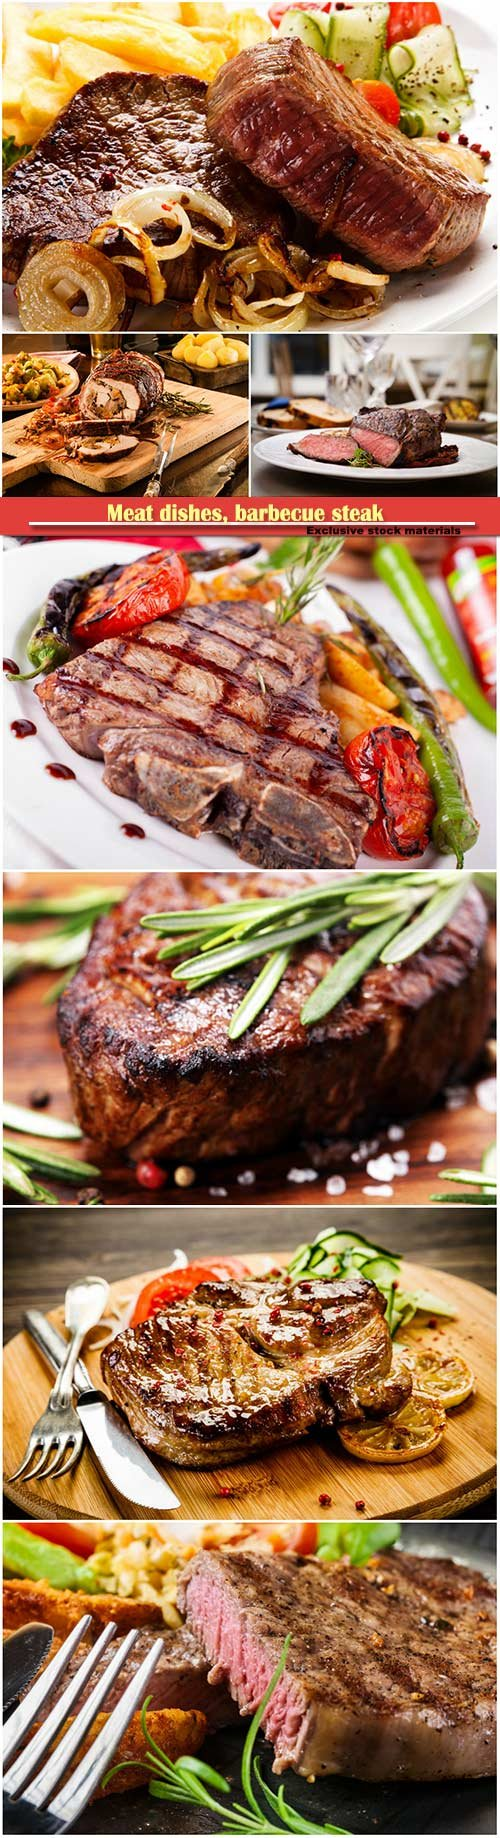 Meat dishes, barbecue steak